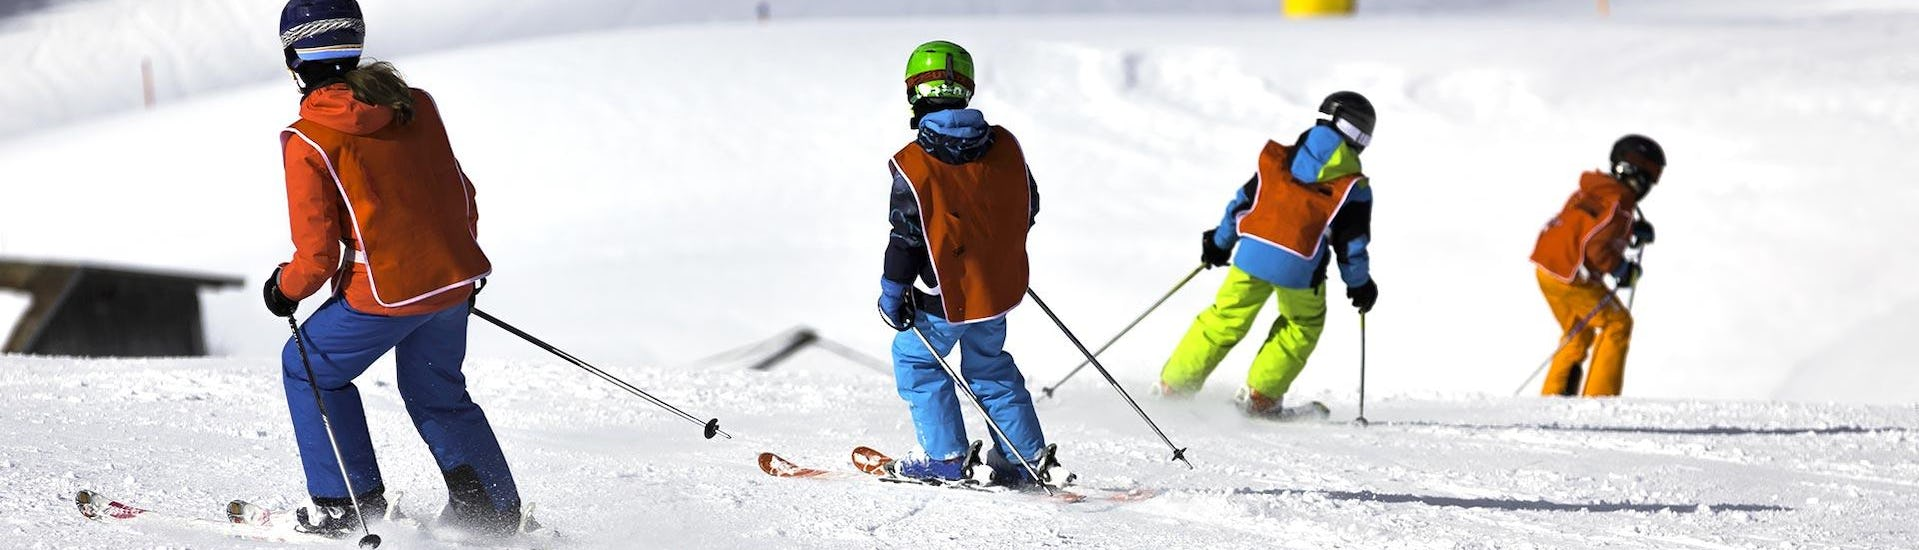 Ski Private Instructor Morning for Kids - All Levels